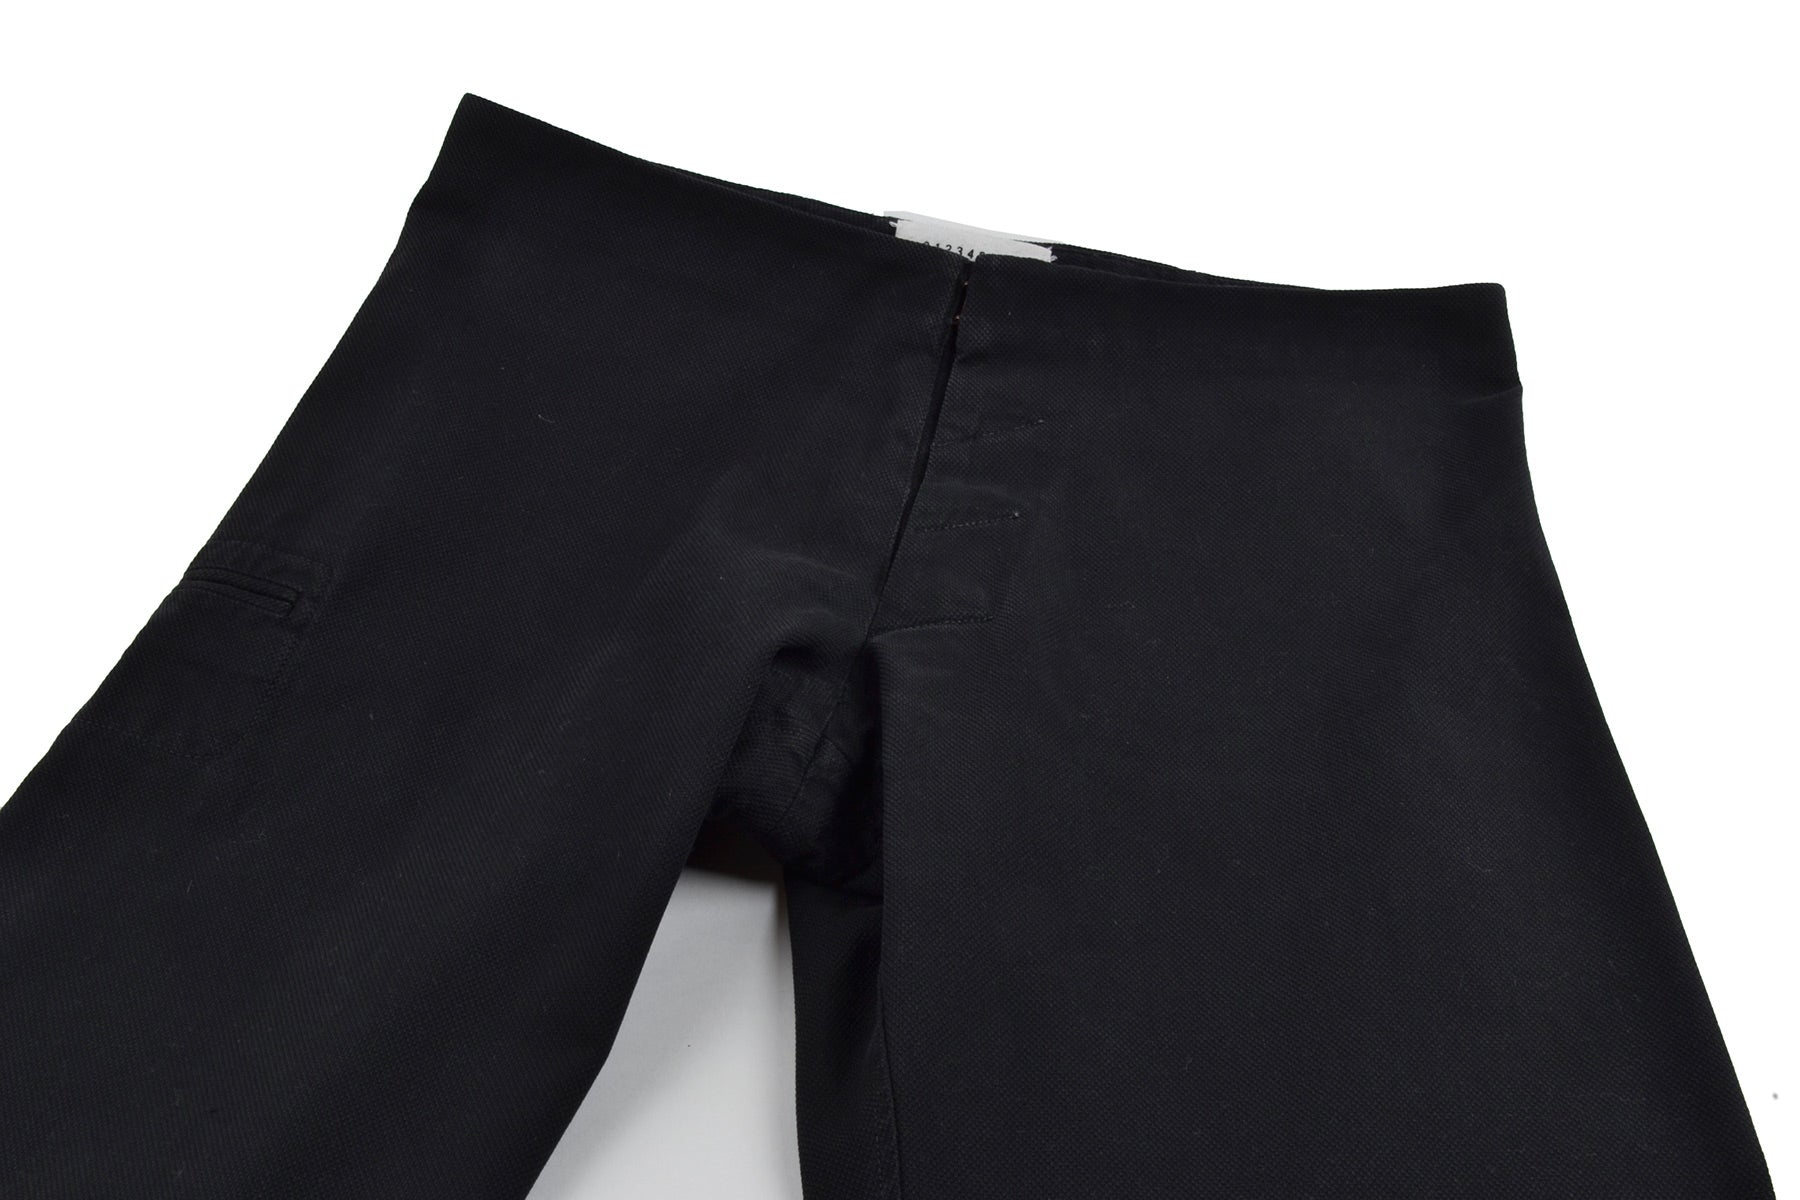 2006 A/W MCQUEEN ANATOMICAL PIQUE COTTON BLACK TROUSERS WITH SILESIA POCKET